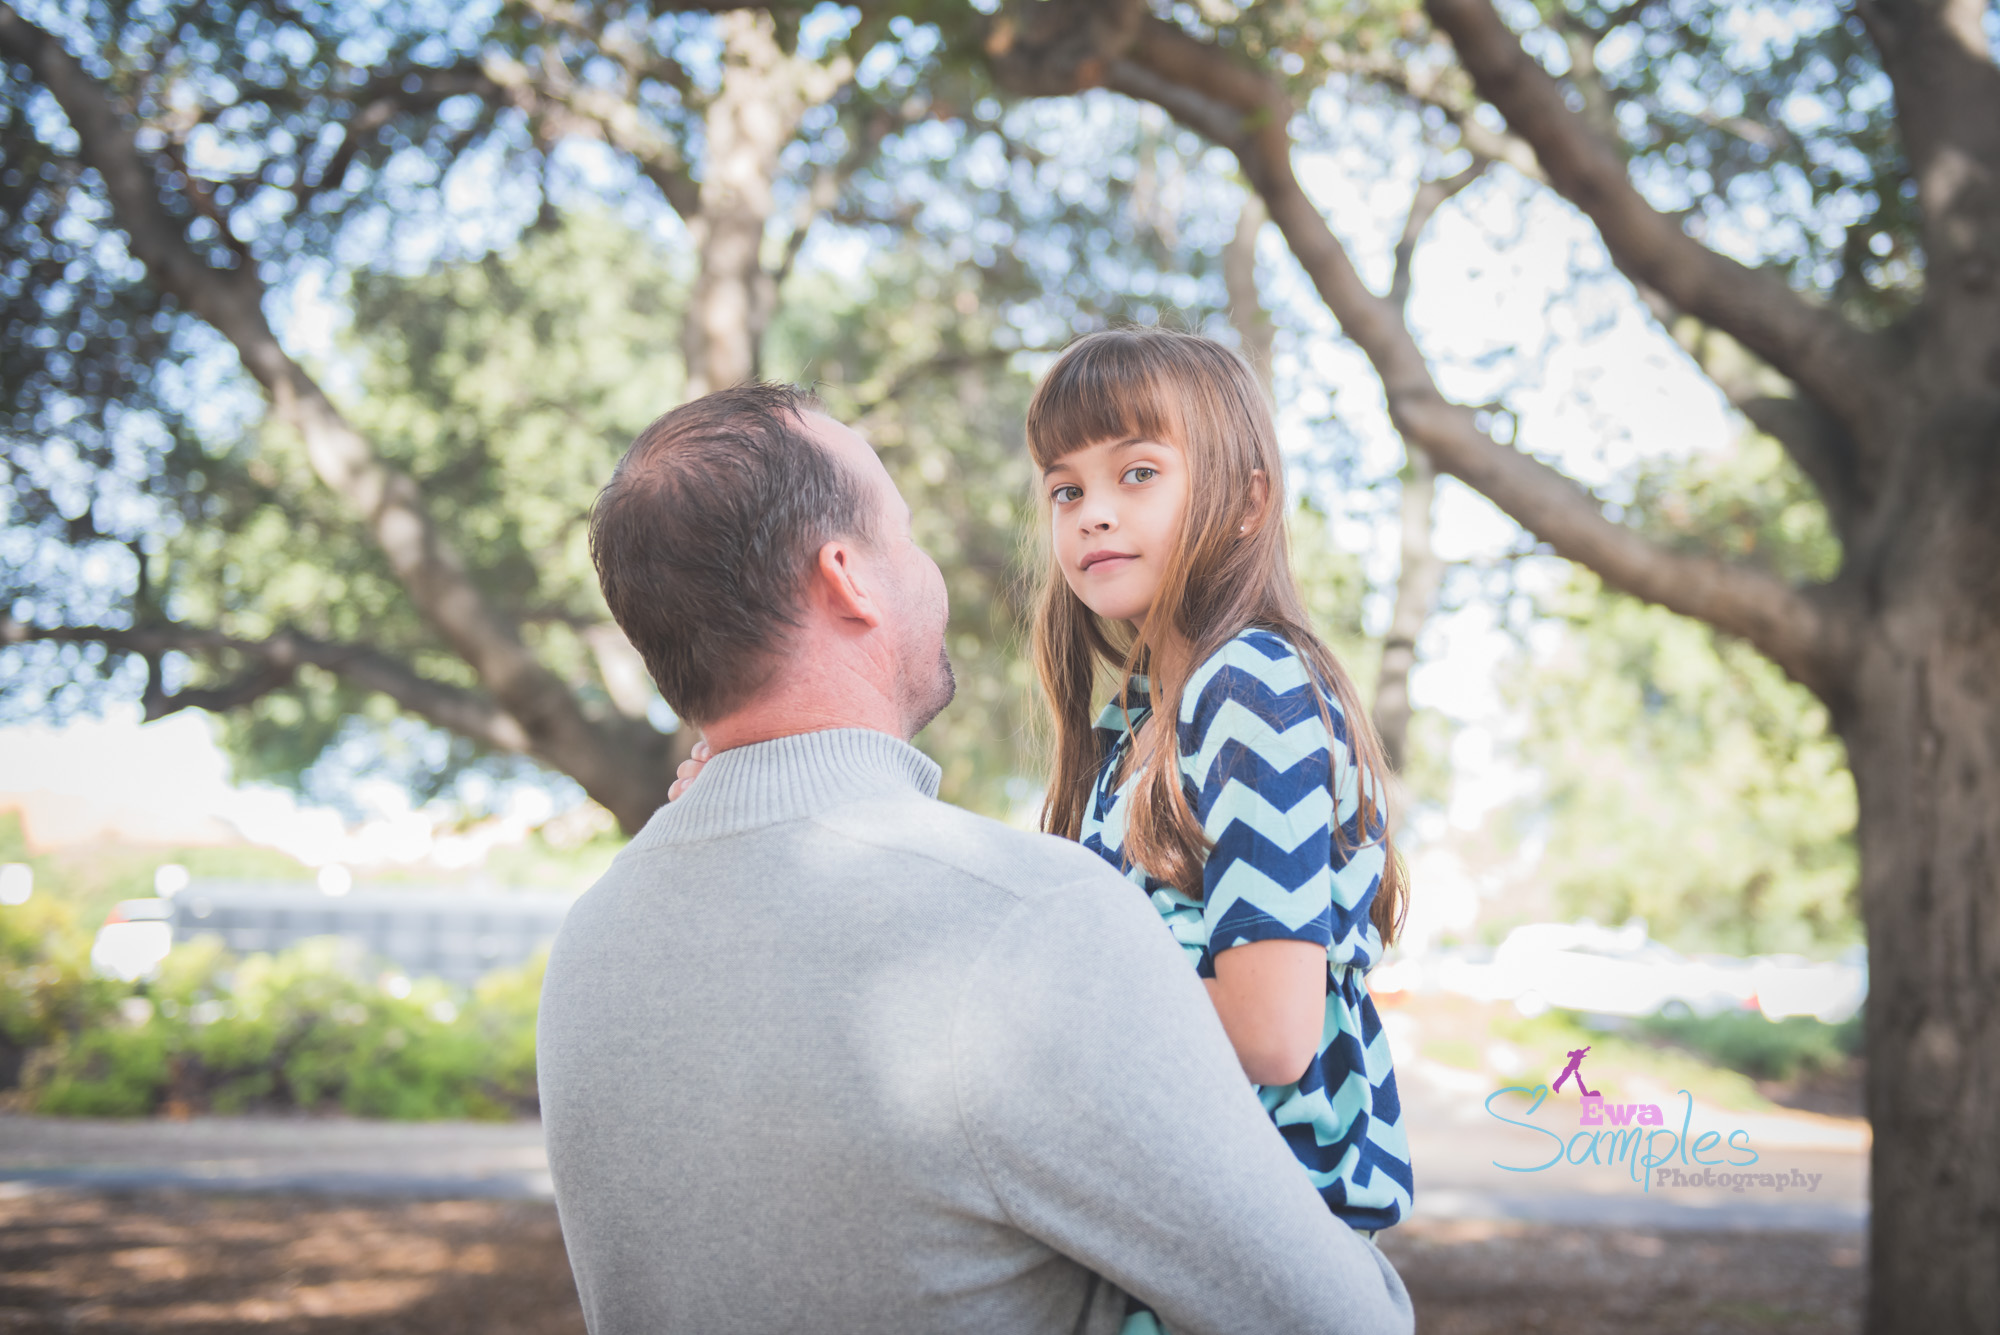 father_daughter_photos_ideas_Stanford_family_photographer-10